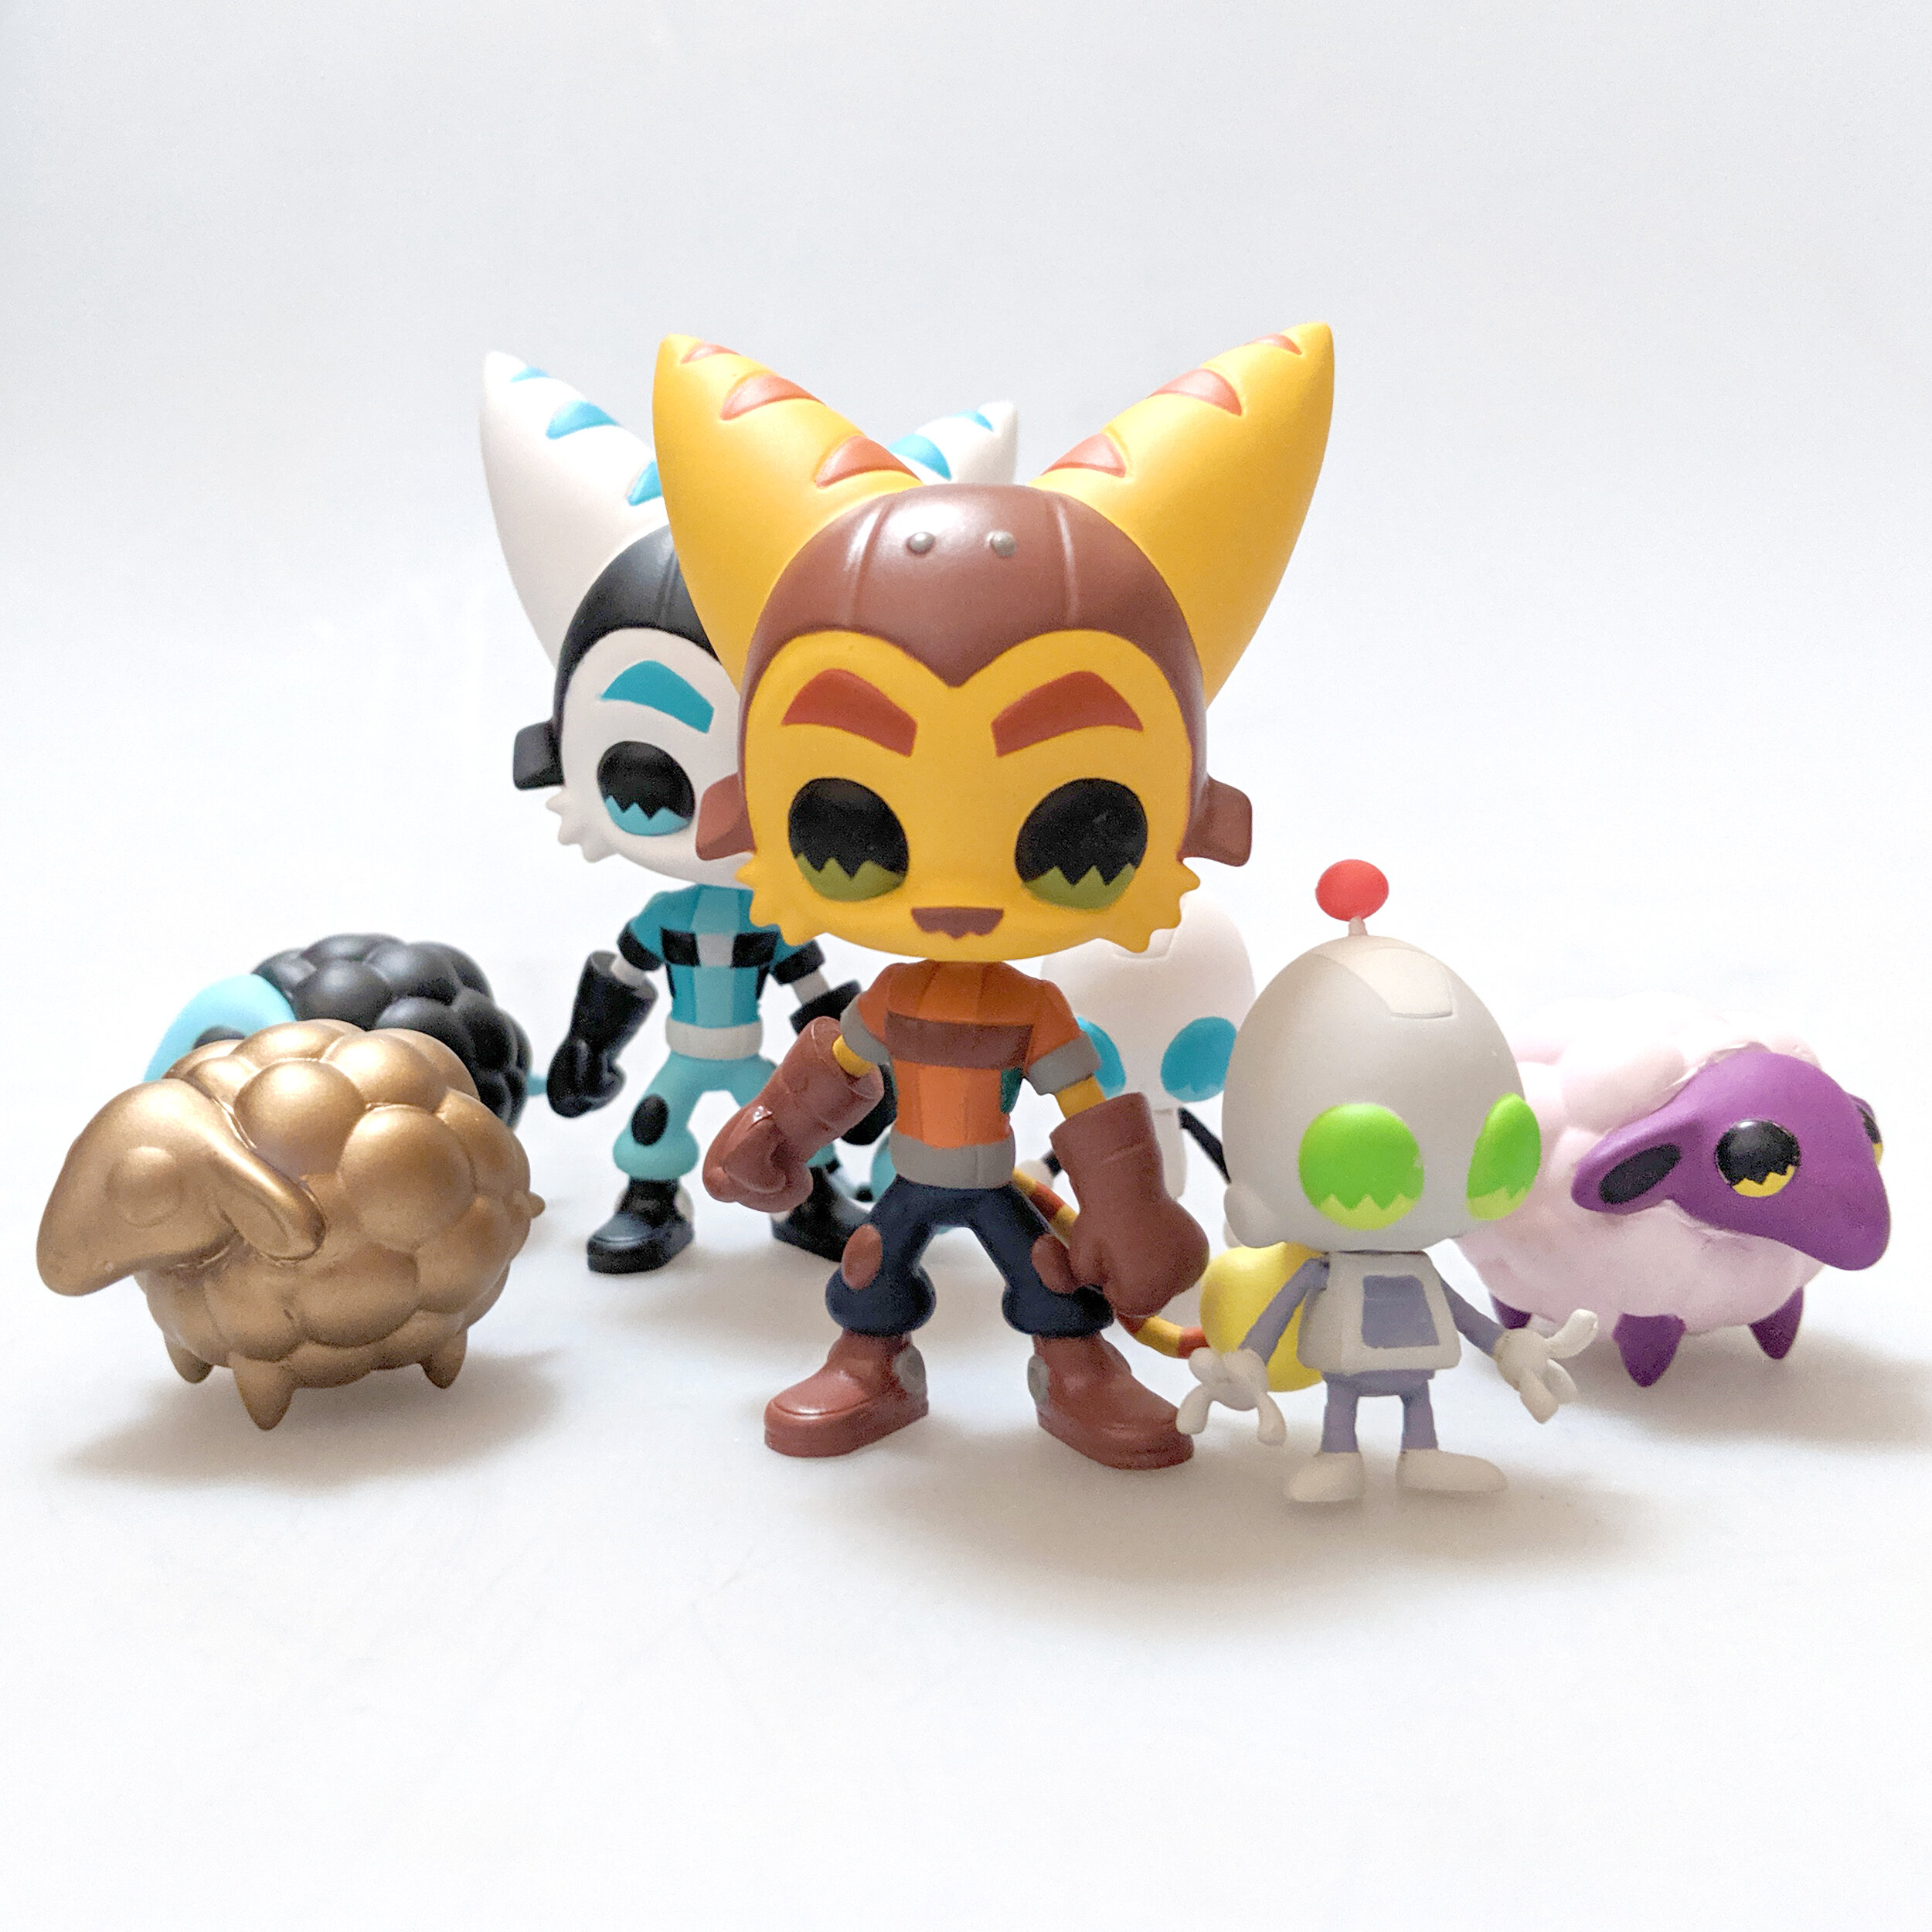 Ratchet Clank Blindbag Official Insomniac Games Store